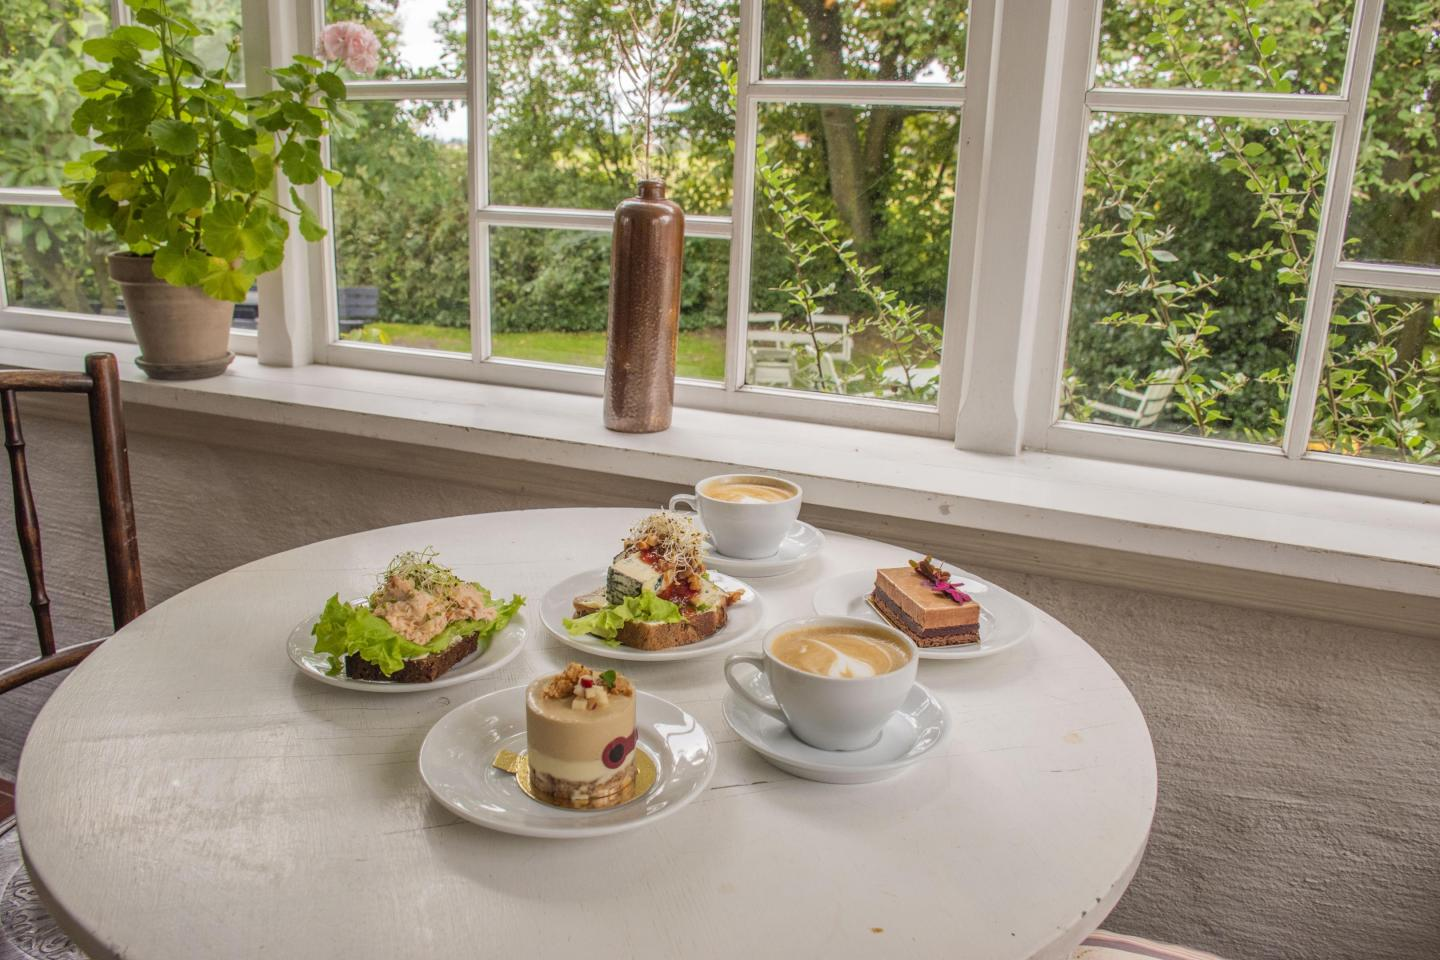 A table with sandwiches, pastries and coffee overlooking the garden